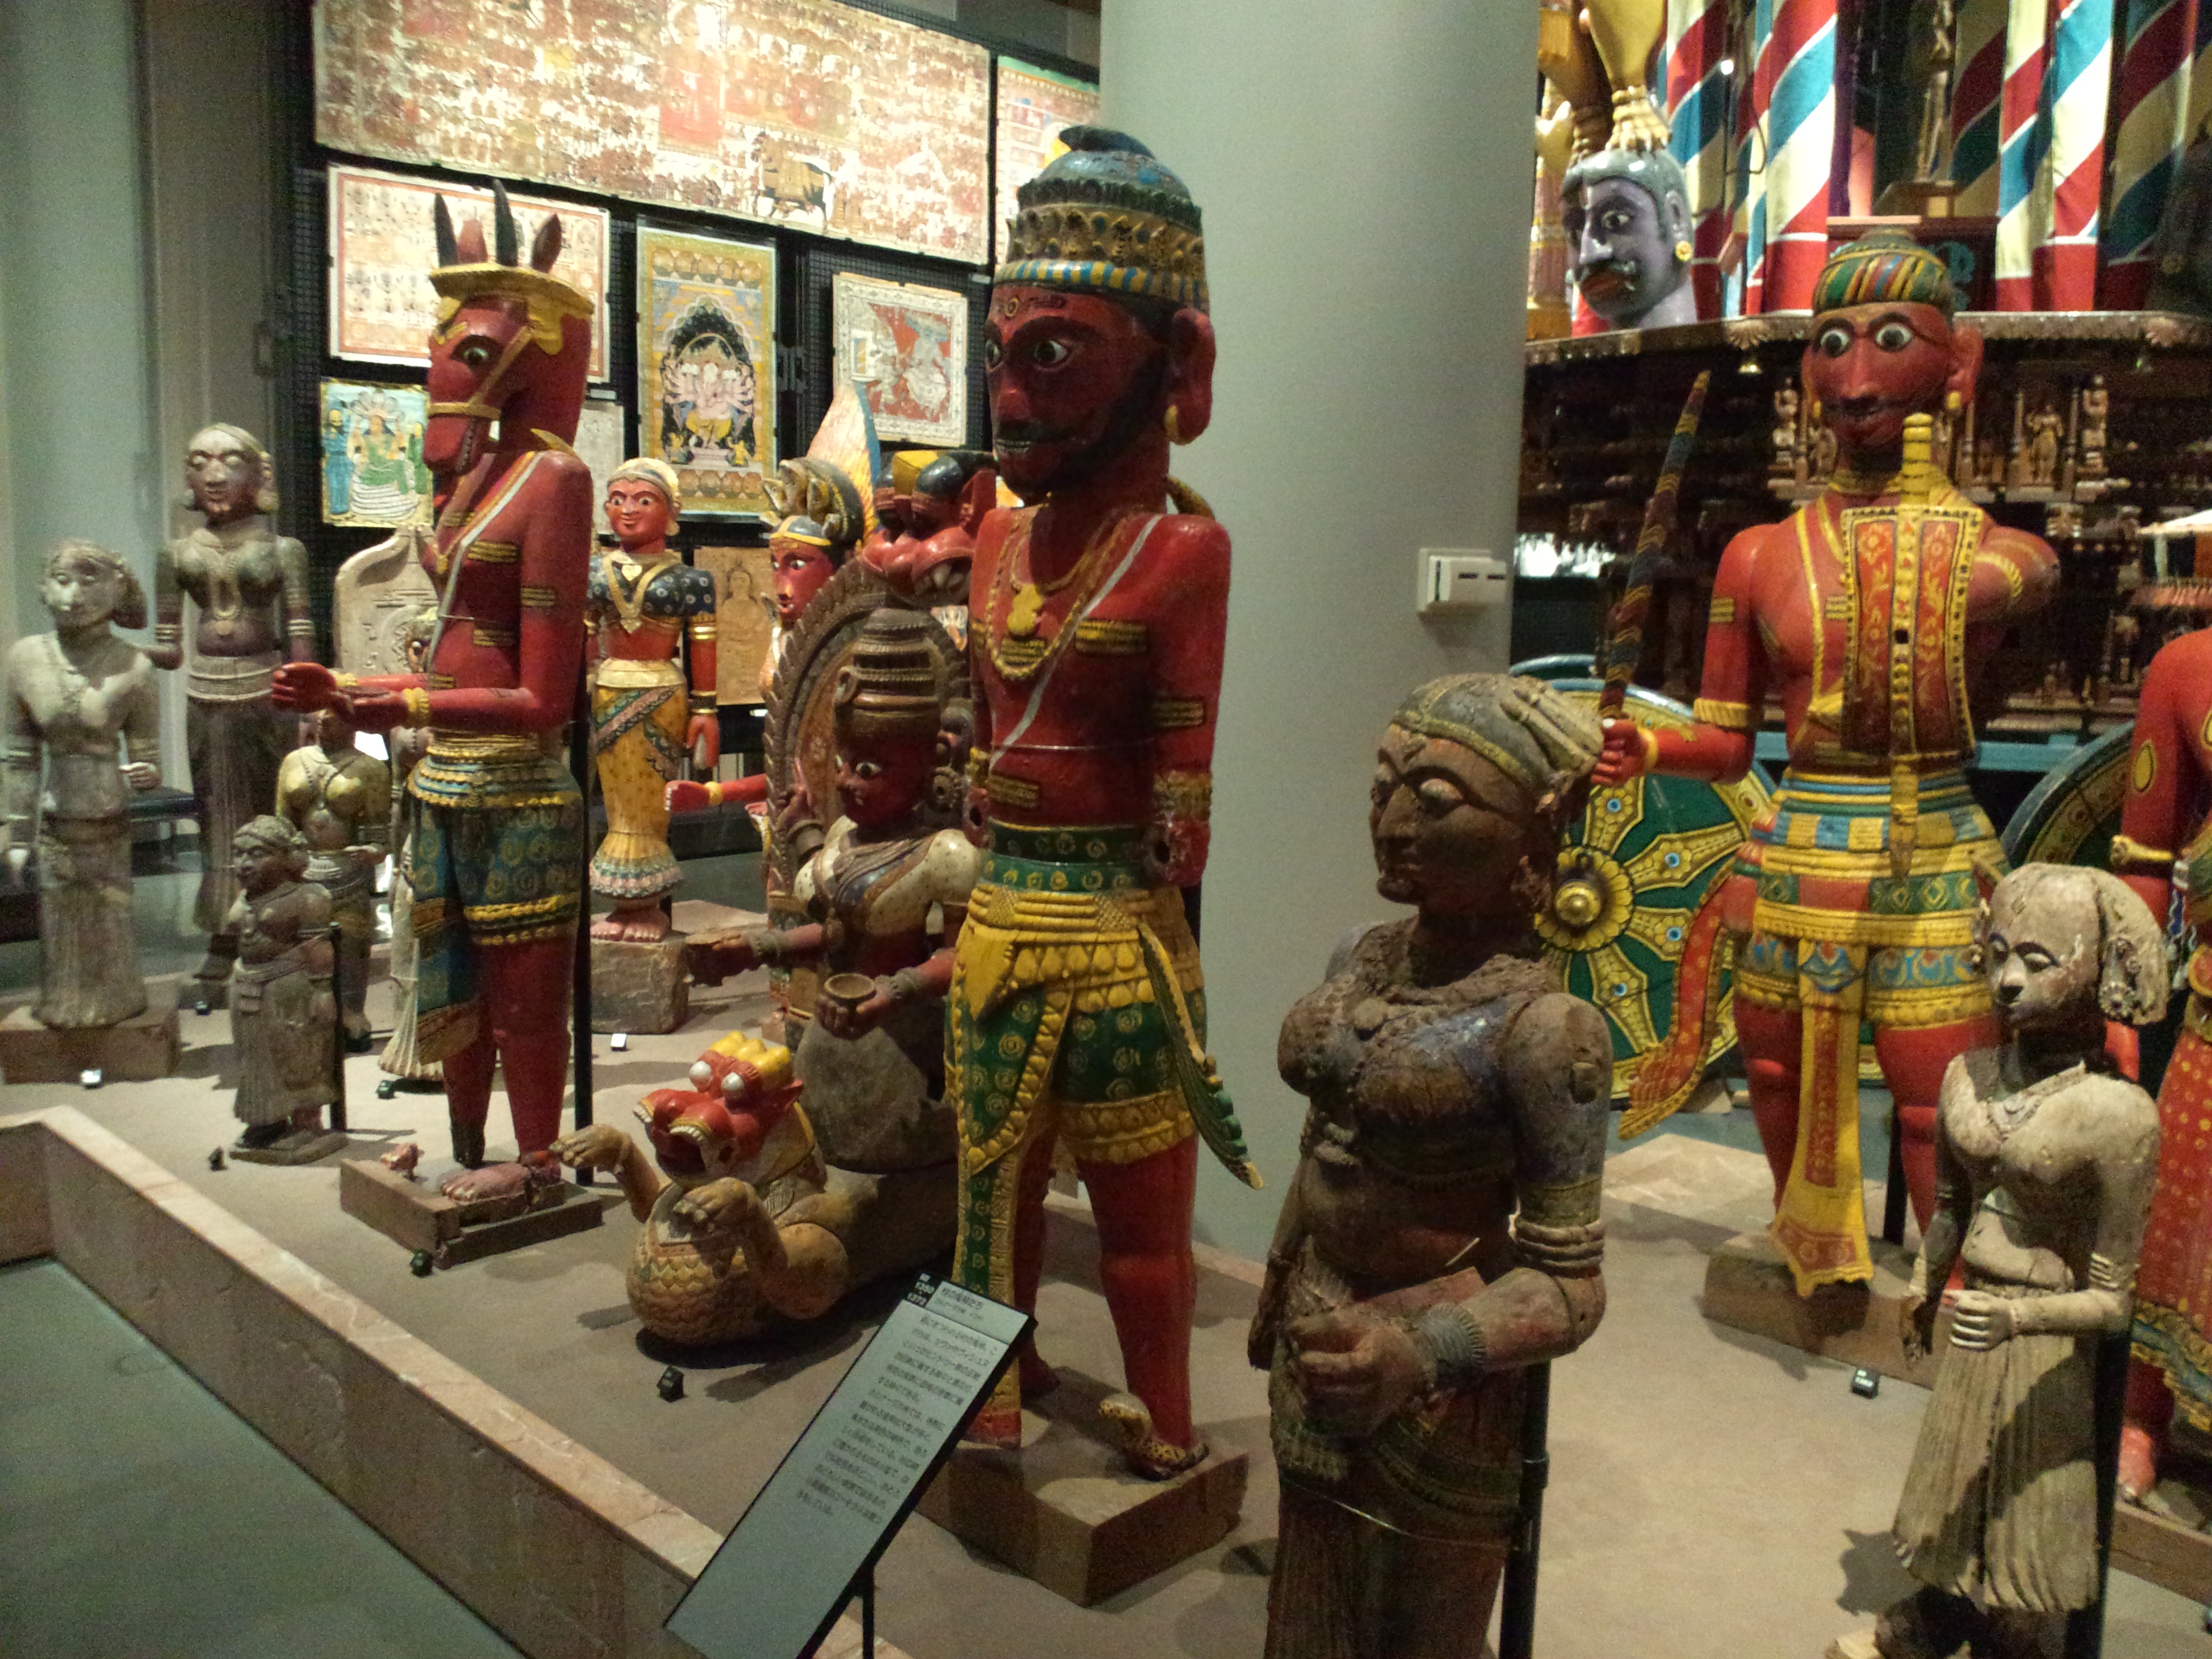 National_Museum_of_Ethnology,_Osaka_-_Demons_of_the_village_-_State_of_Karnataka_in_India.jpg